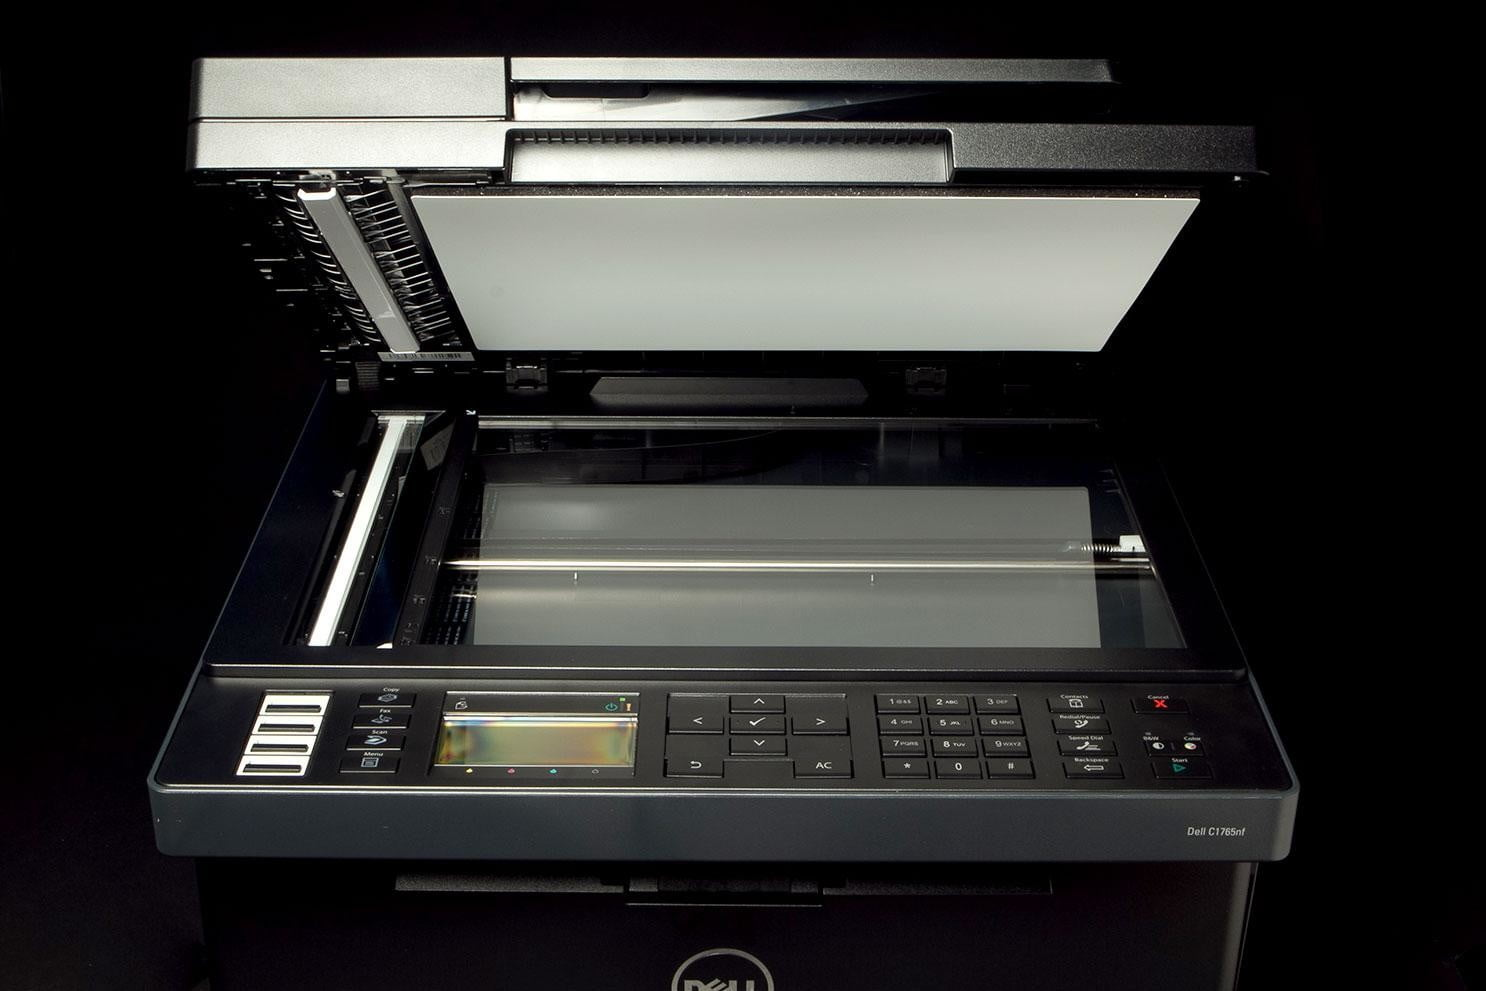 Dell-C1765-Printer-front-scanner-bed